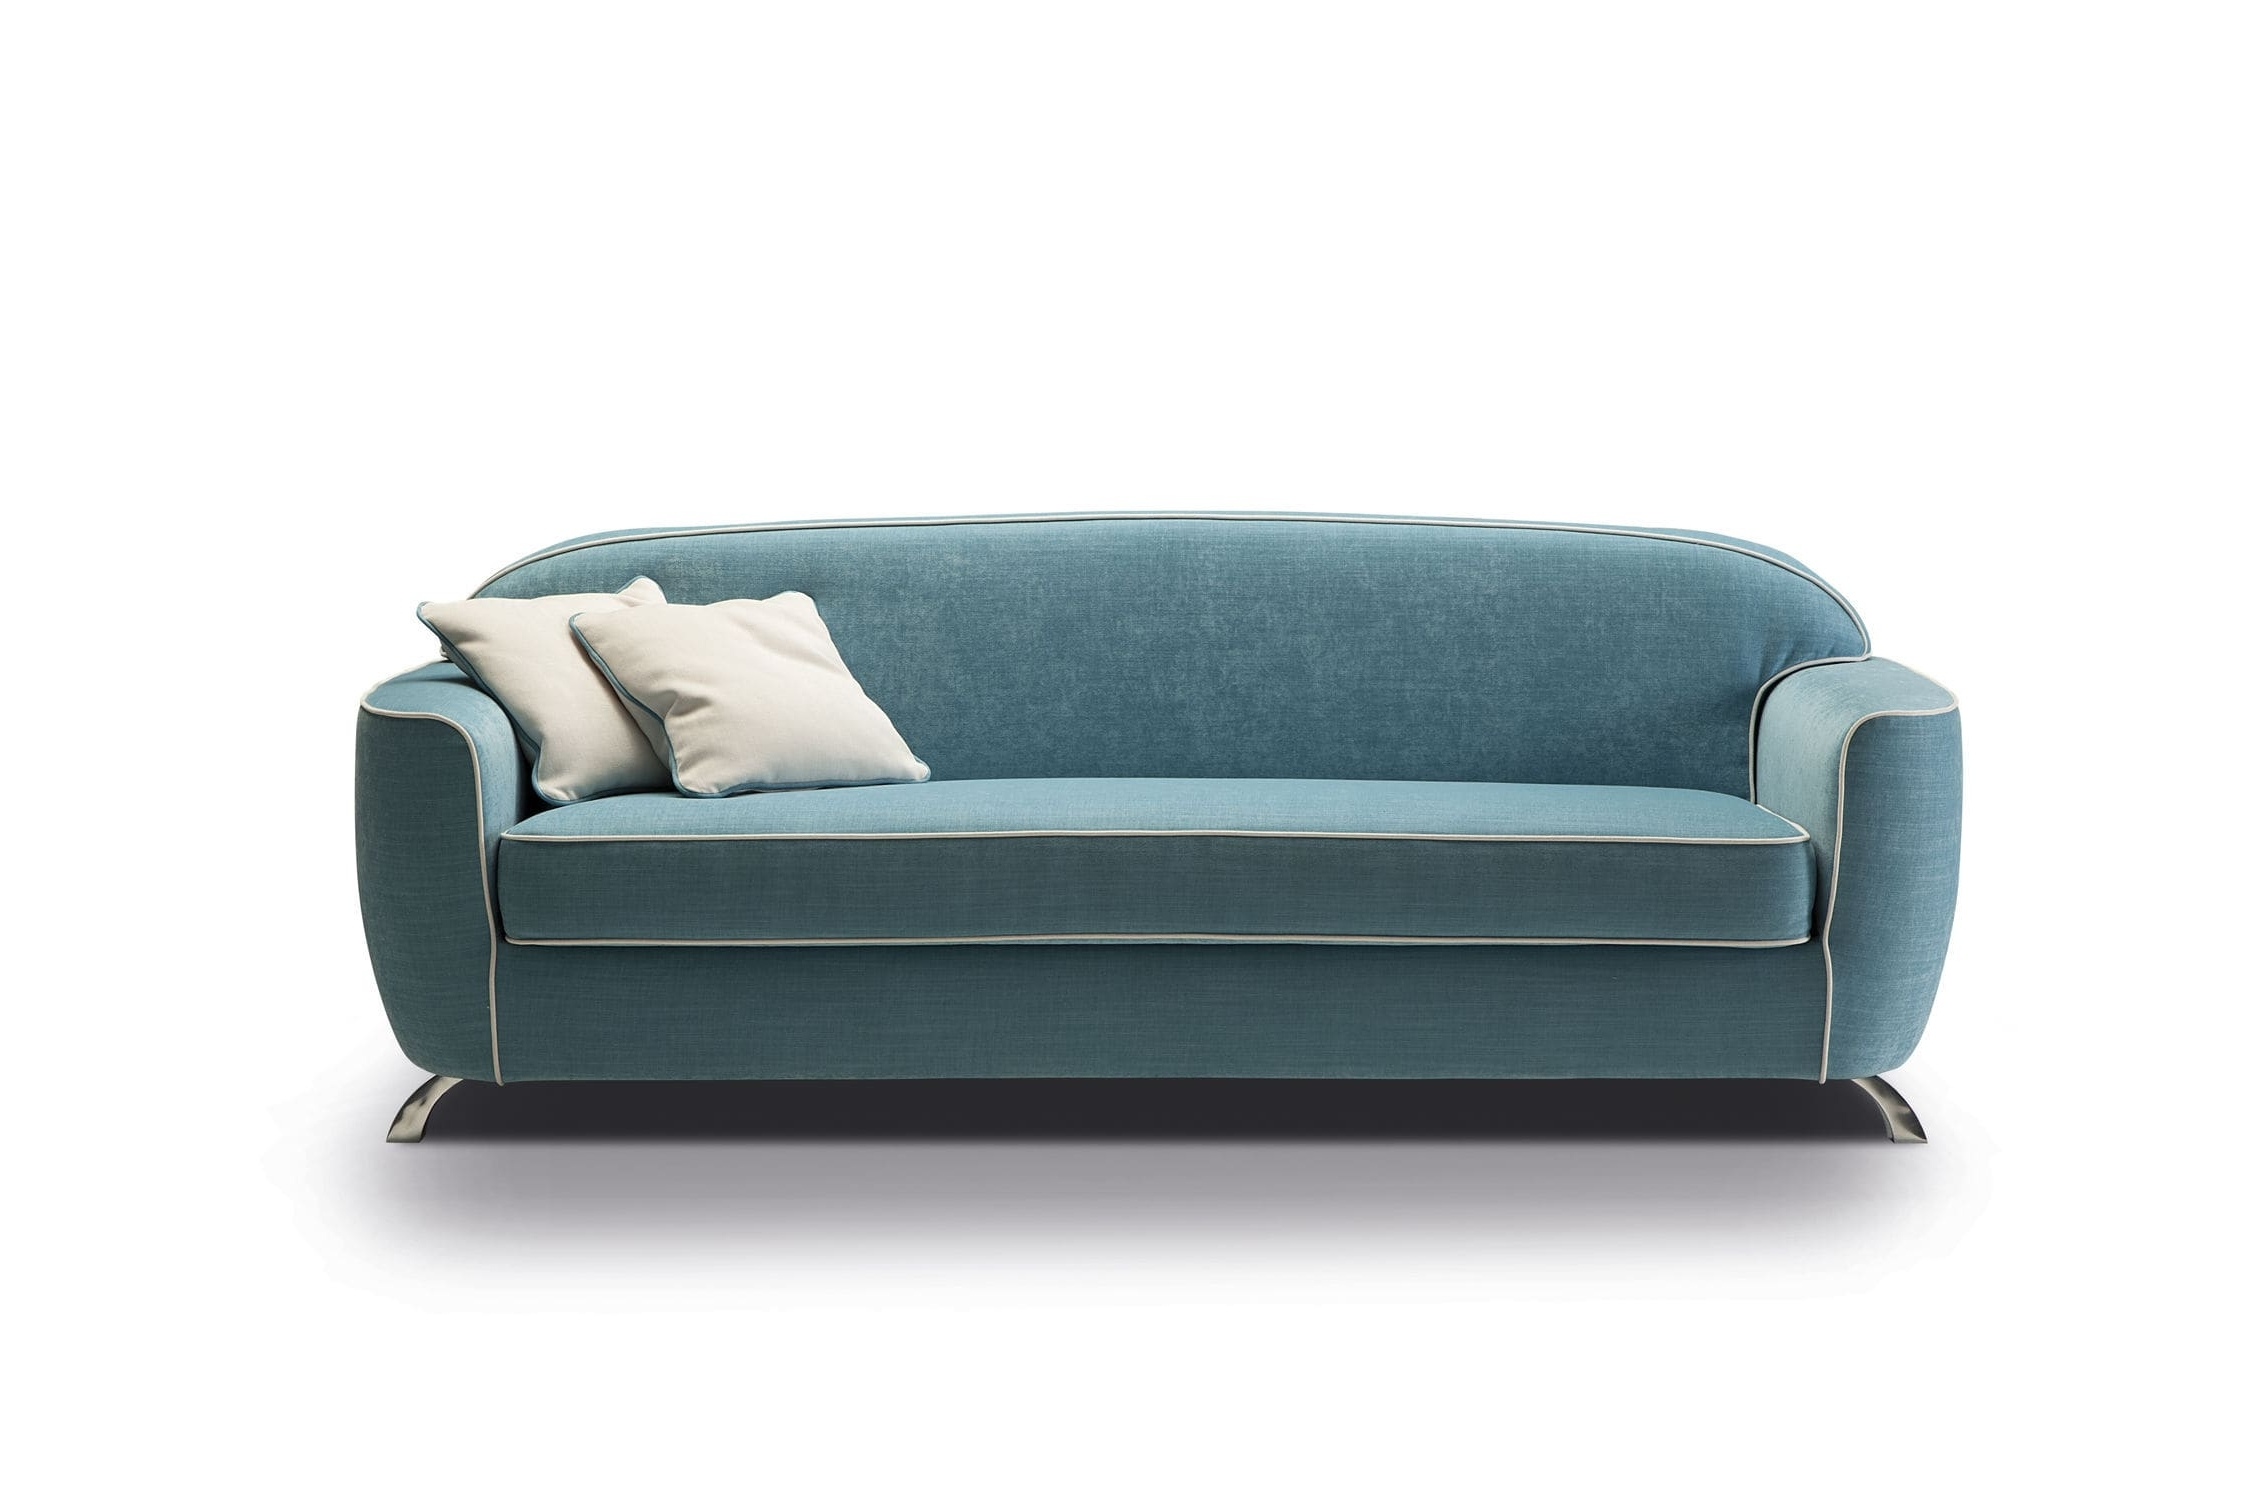 Sofa Bed / Contemporary / Fabric / With Washable Removable Cover Inside Trendy Sofas With Washable Covers (View 7 of 15)